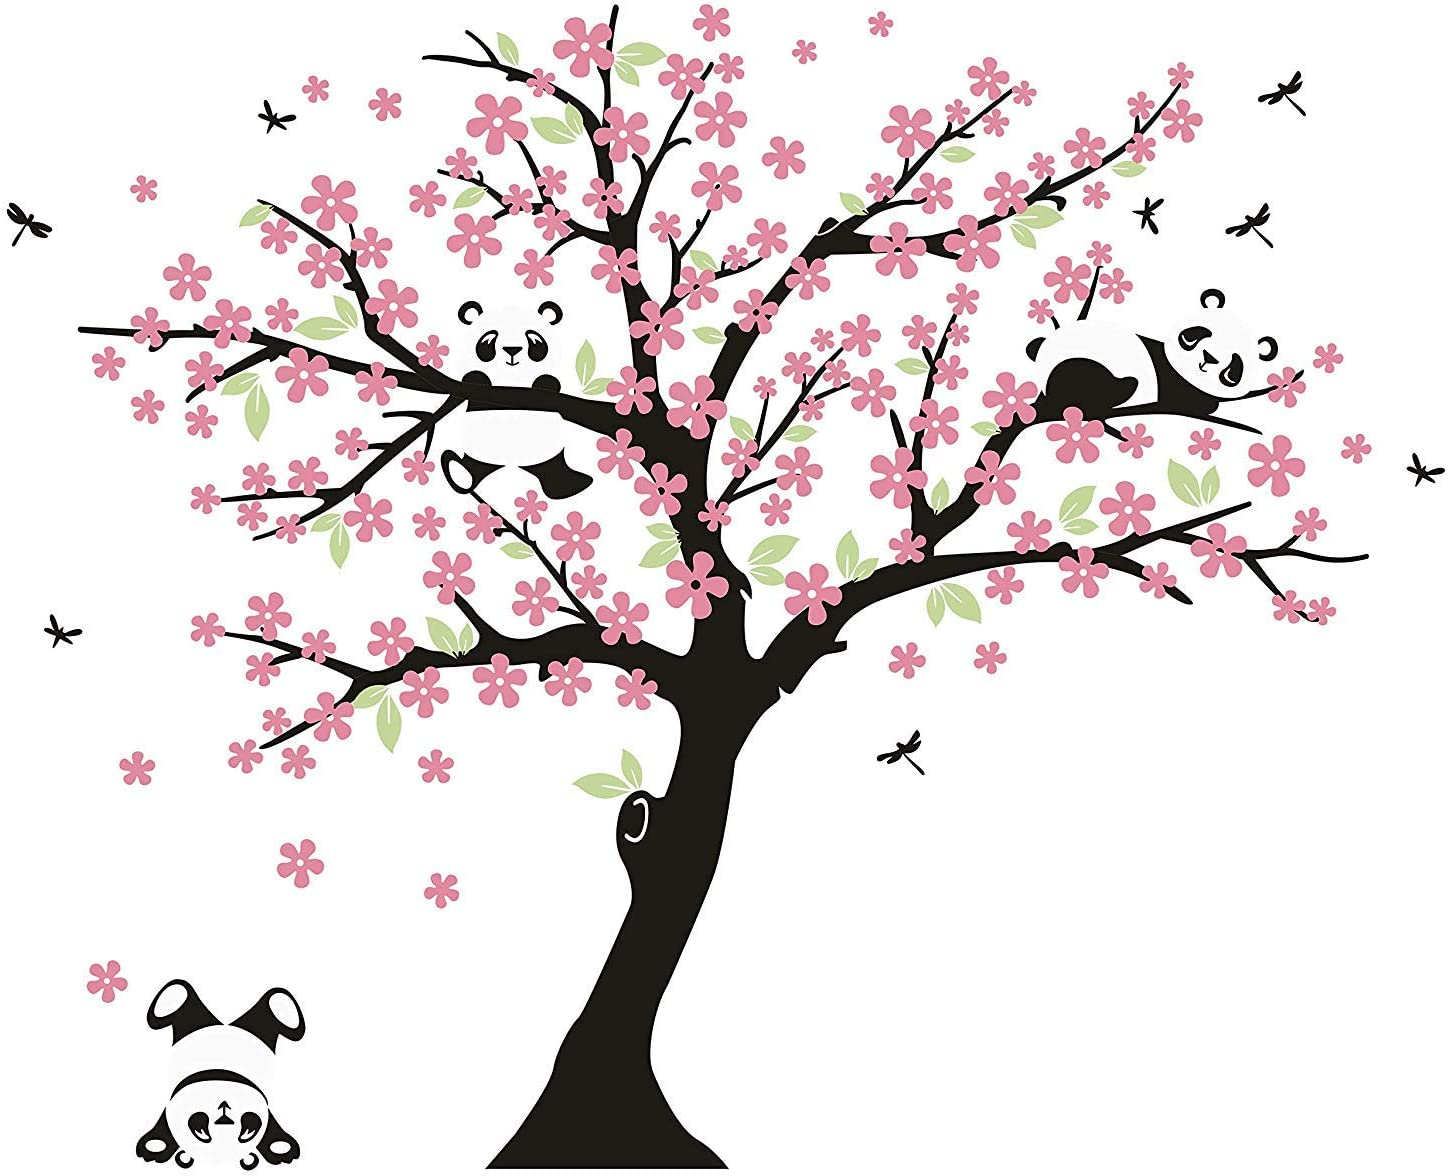 Tree Wall Decals for Kids Room with Three Little Panda Bears Wall Stickers Nursery Wall Decals Room Decoration (Pink)